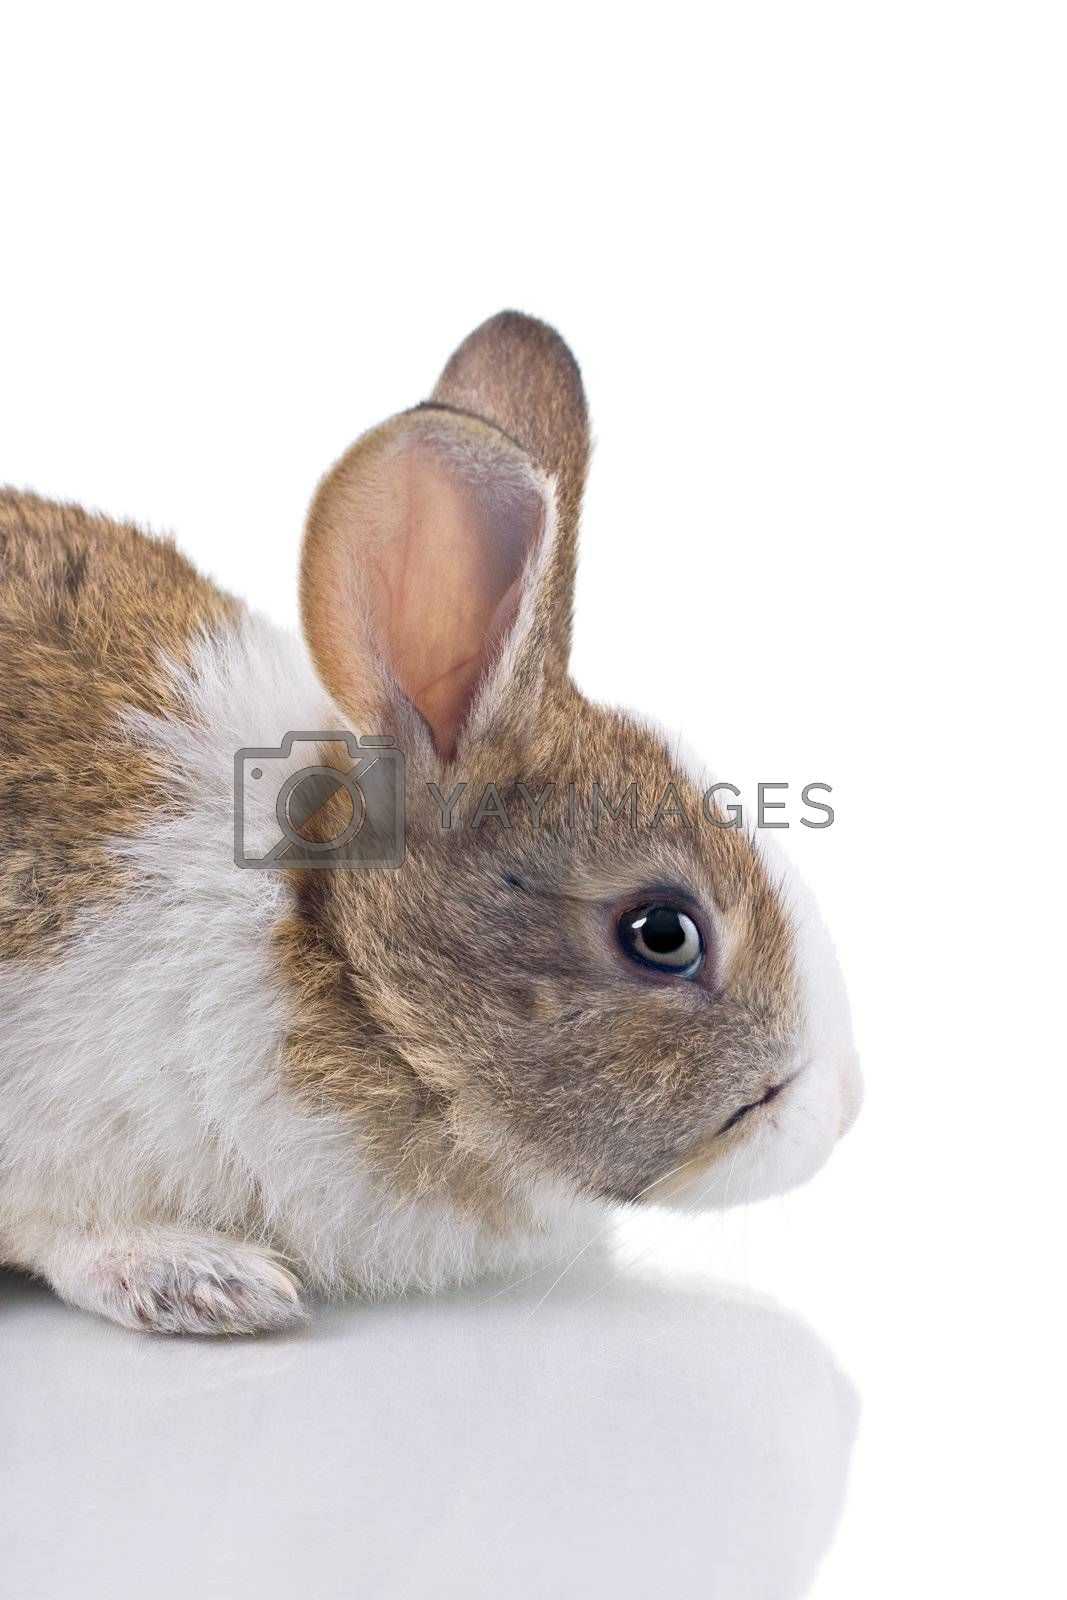 Royalty free image of Bunny by ajn